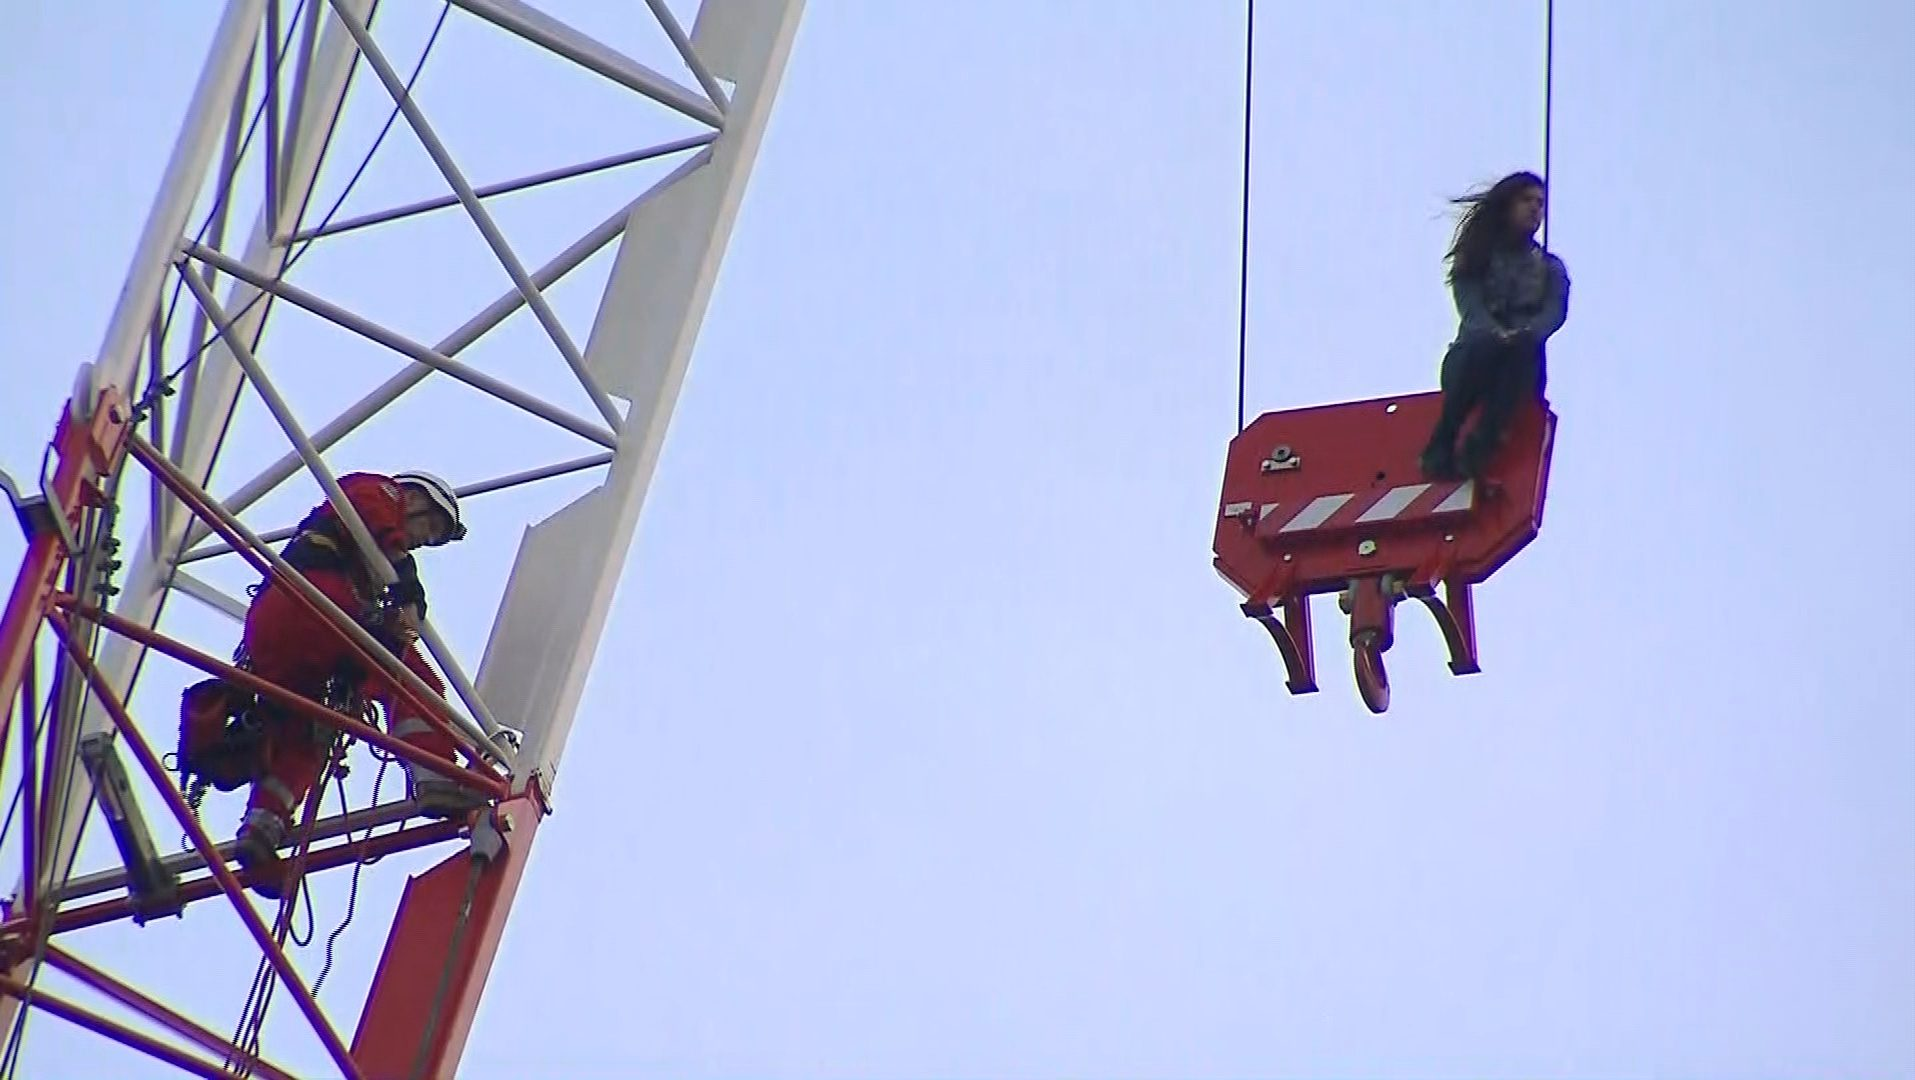 'Crane Girl' pleads guilty; to pay $100 victim surcharge